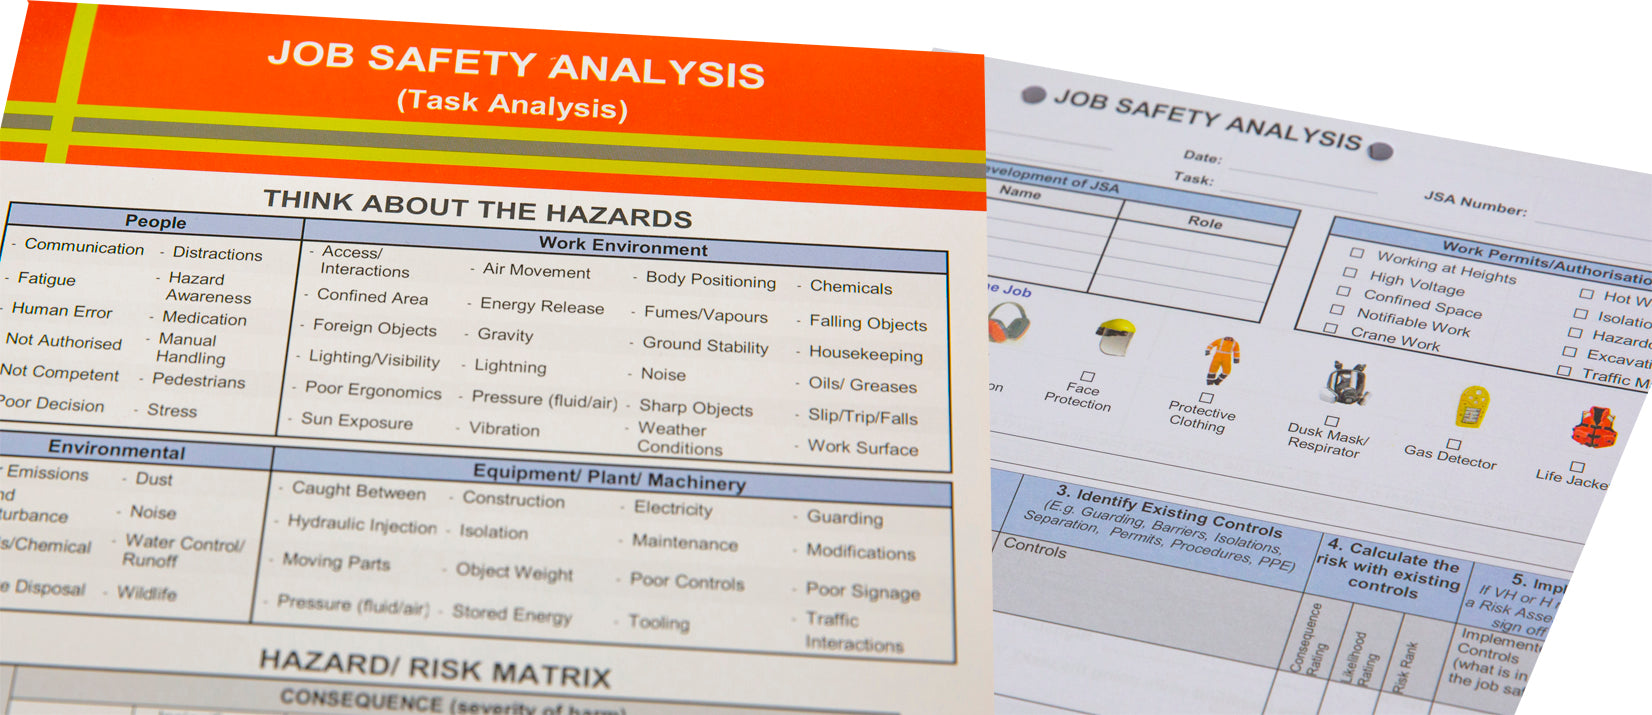 Job Safety Analysis (JSA) Pad